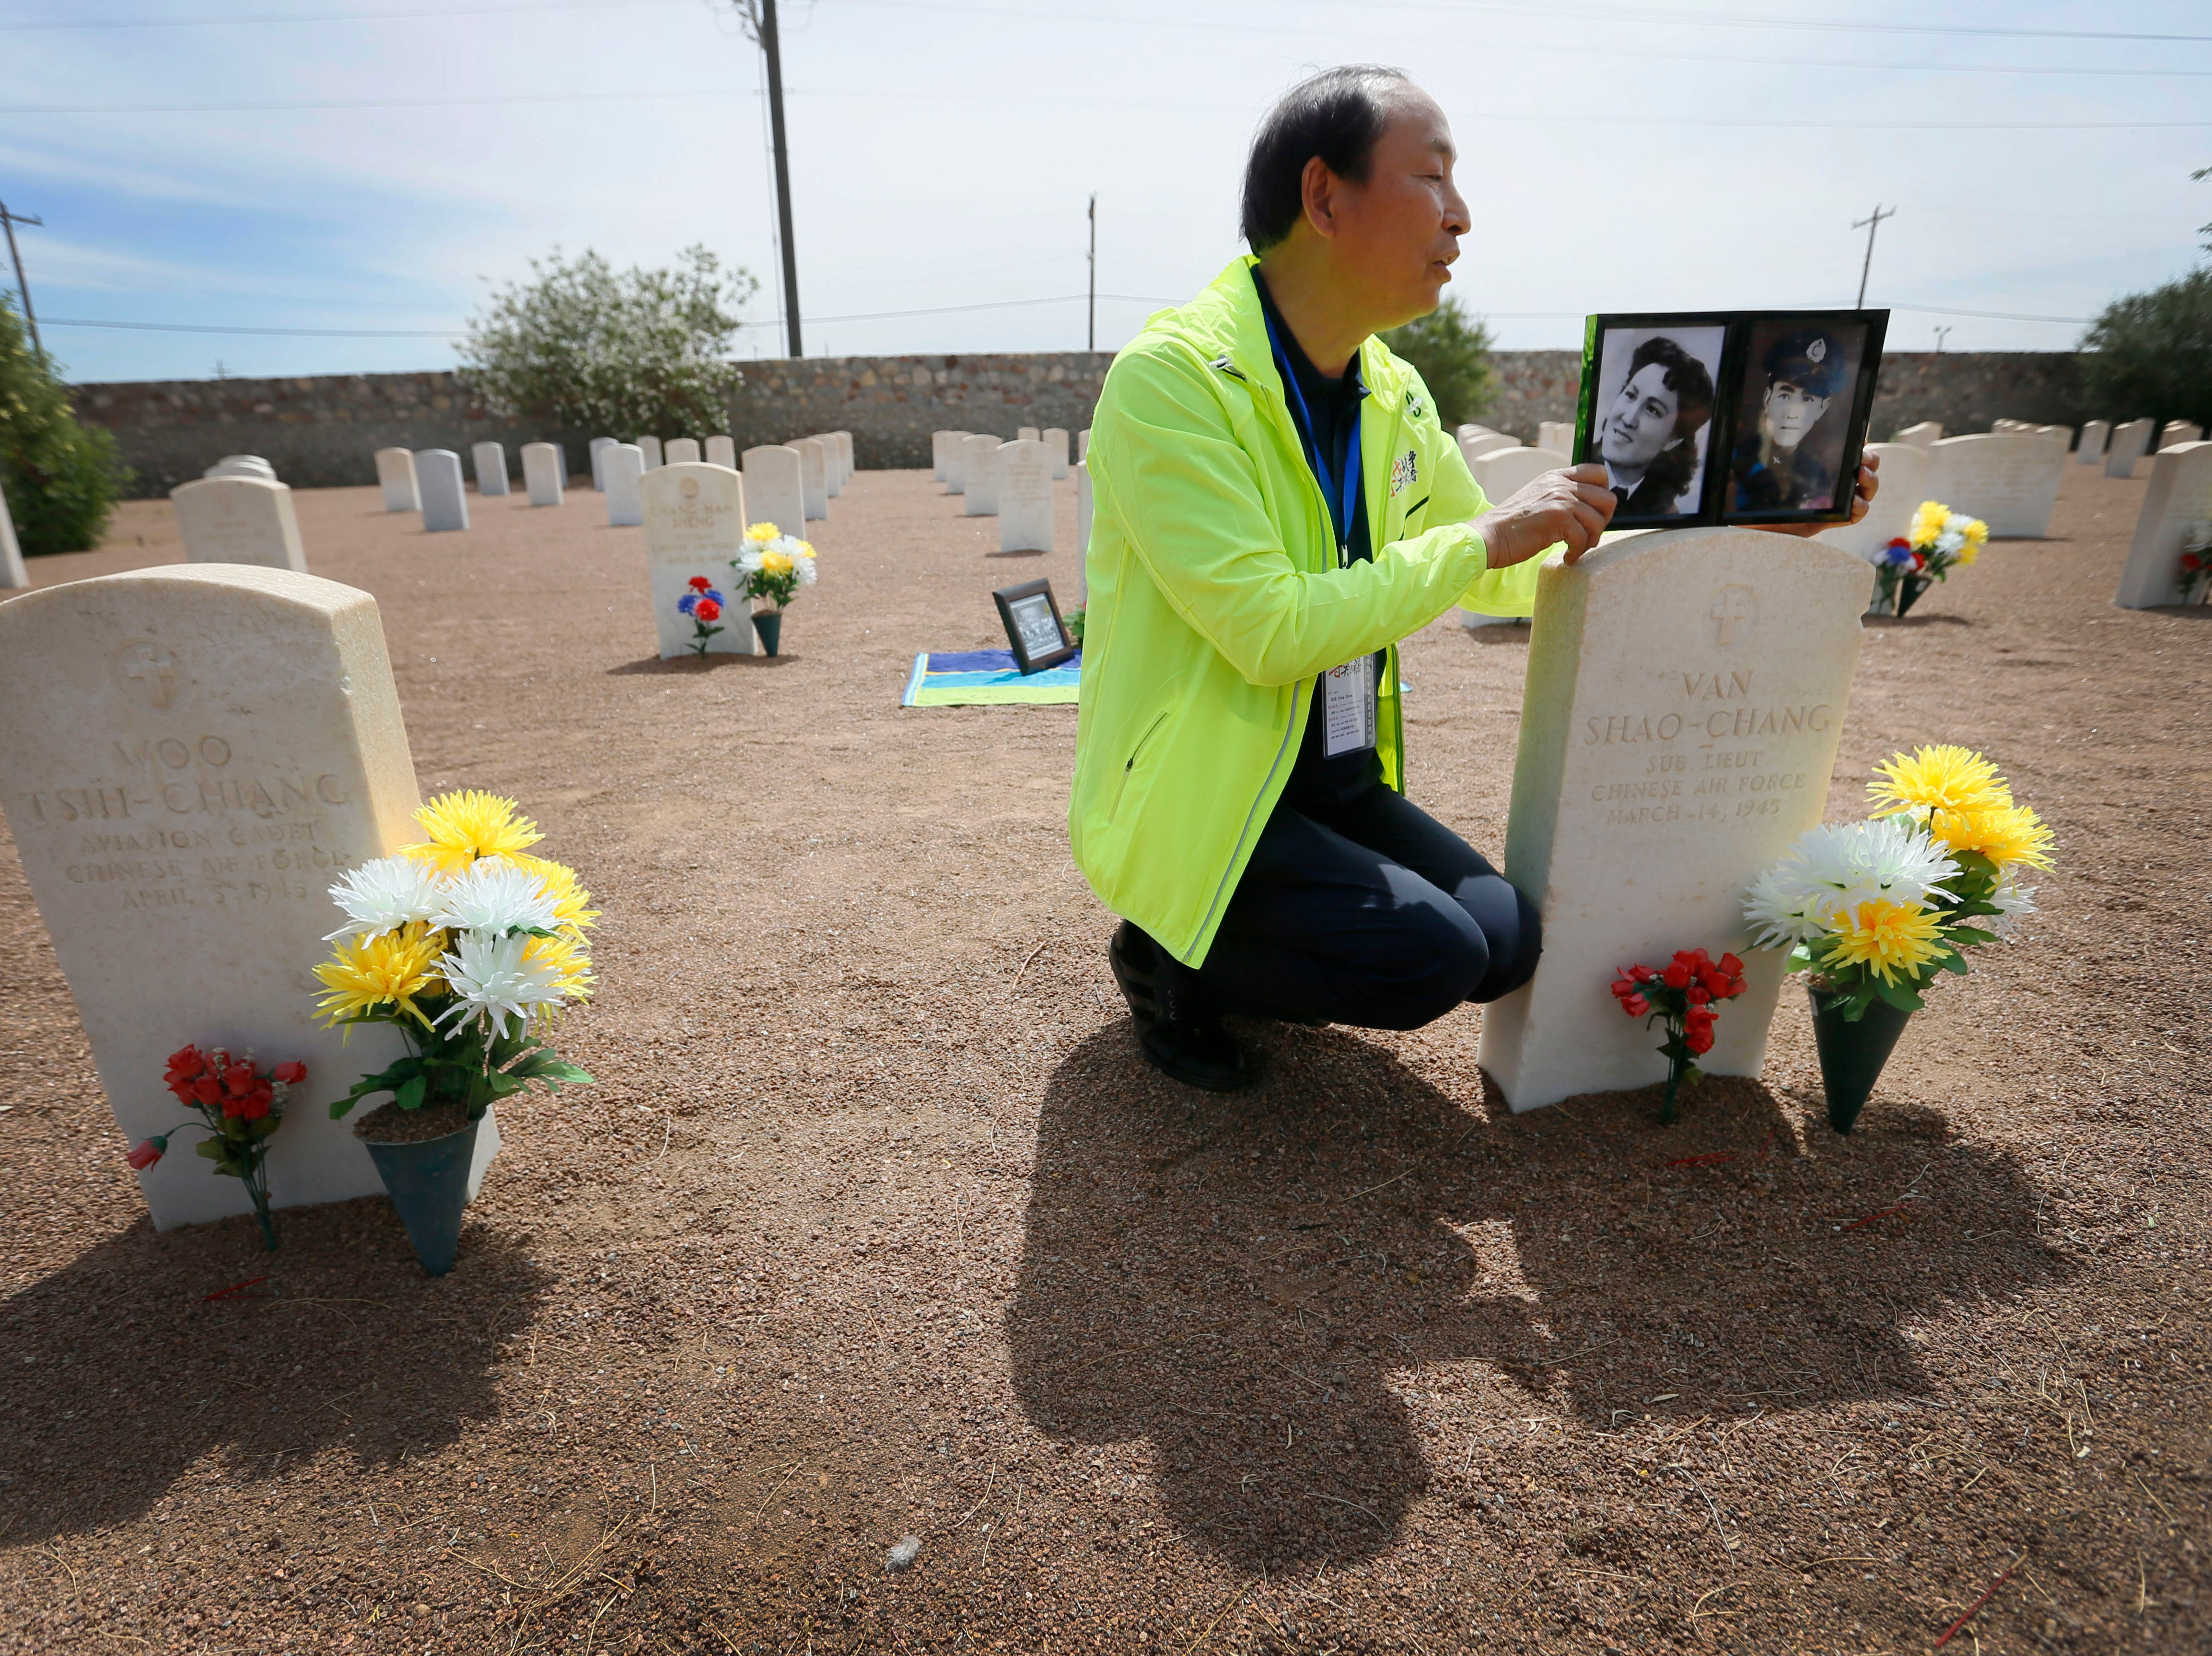 Feng Zhong shows photos of his uncle Van Shao-Chang and his mother next to Van Shao-Chang's burial site Monday, May 13, at Fort Bliss National Cemetery. The Hunan LongYue Peace Charity Development Center brought family members to El Paso to pay a special remembrance to their relatives who are amongst the 52 Chinese pilots who died in the U.S. during flight training in World War II.